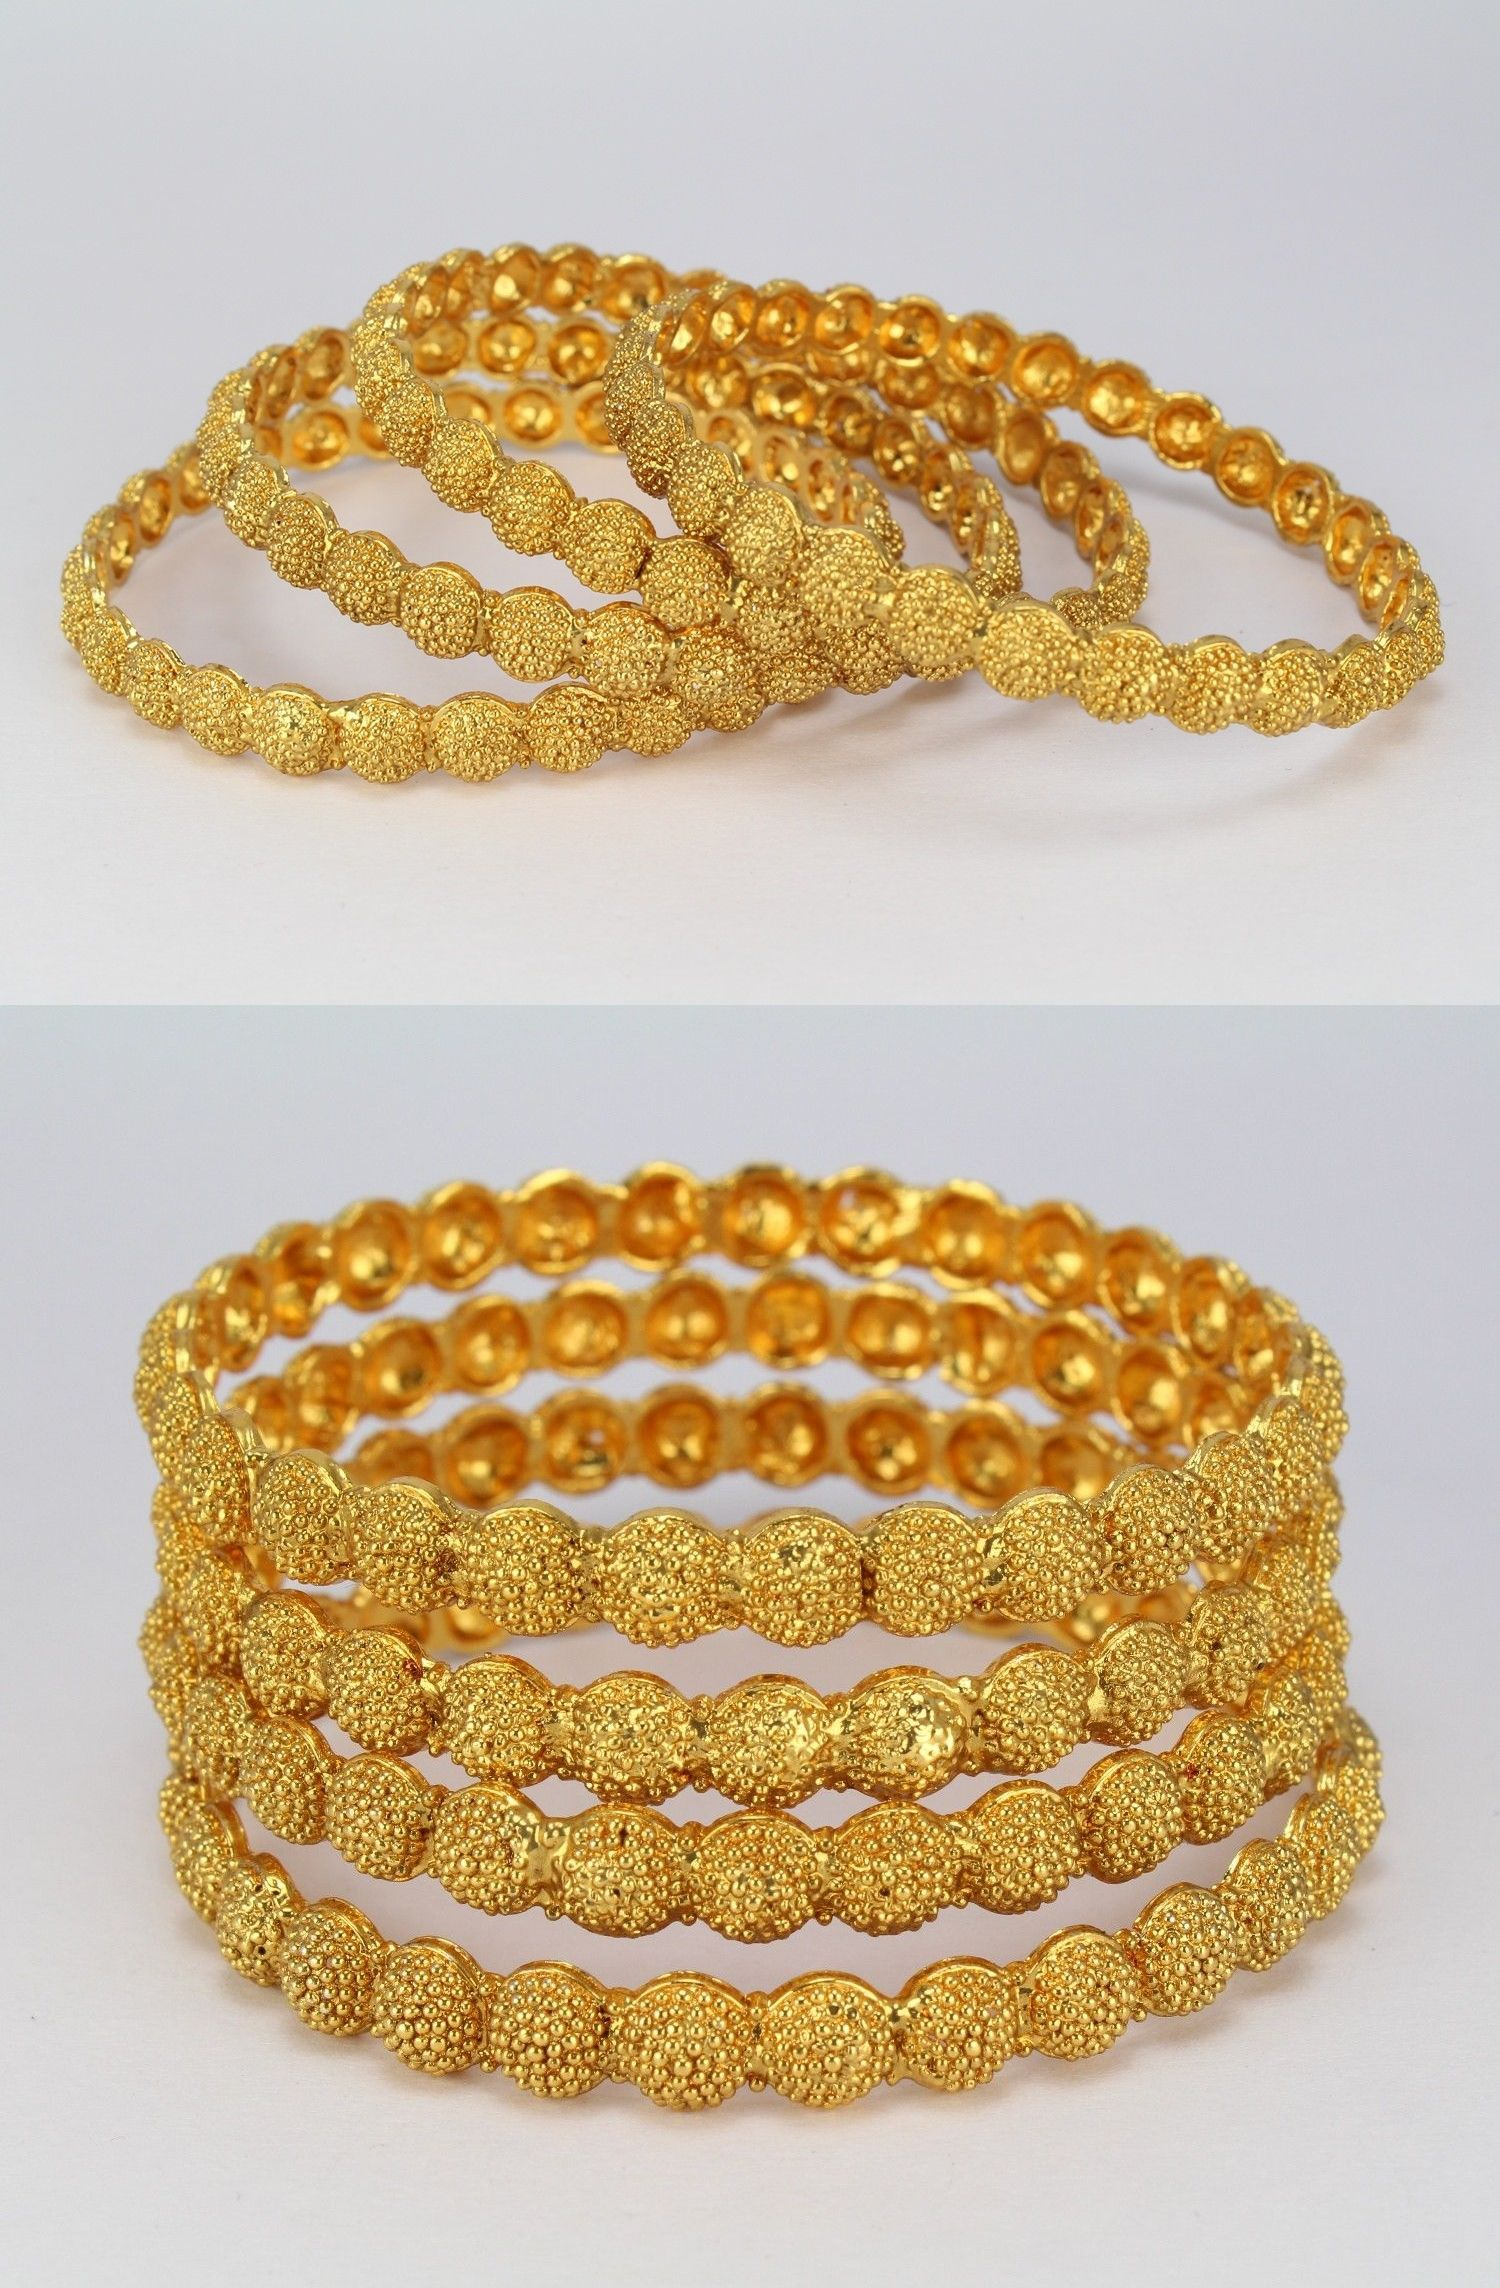 Bracelets 98509 24ct gold plated indian handmade real